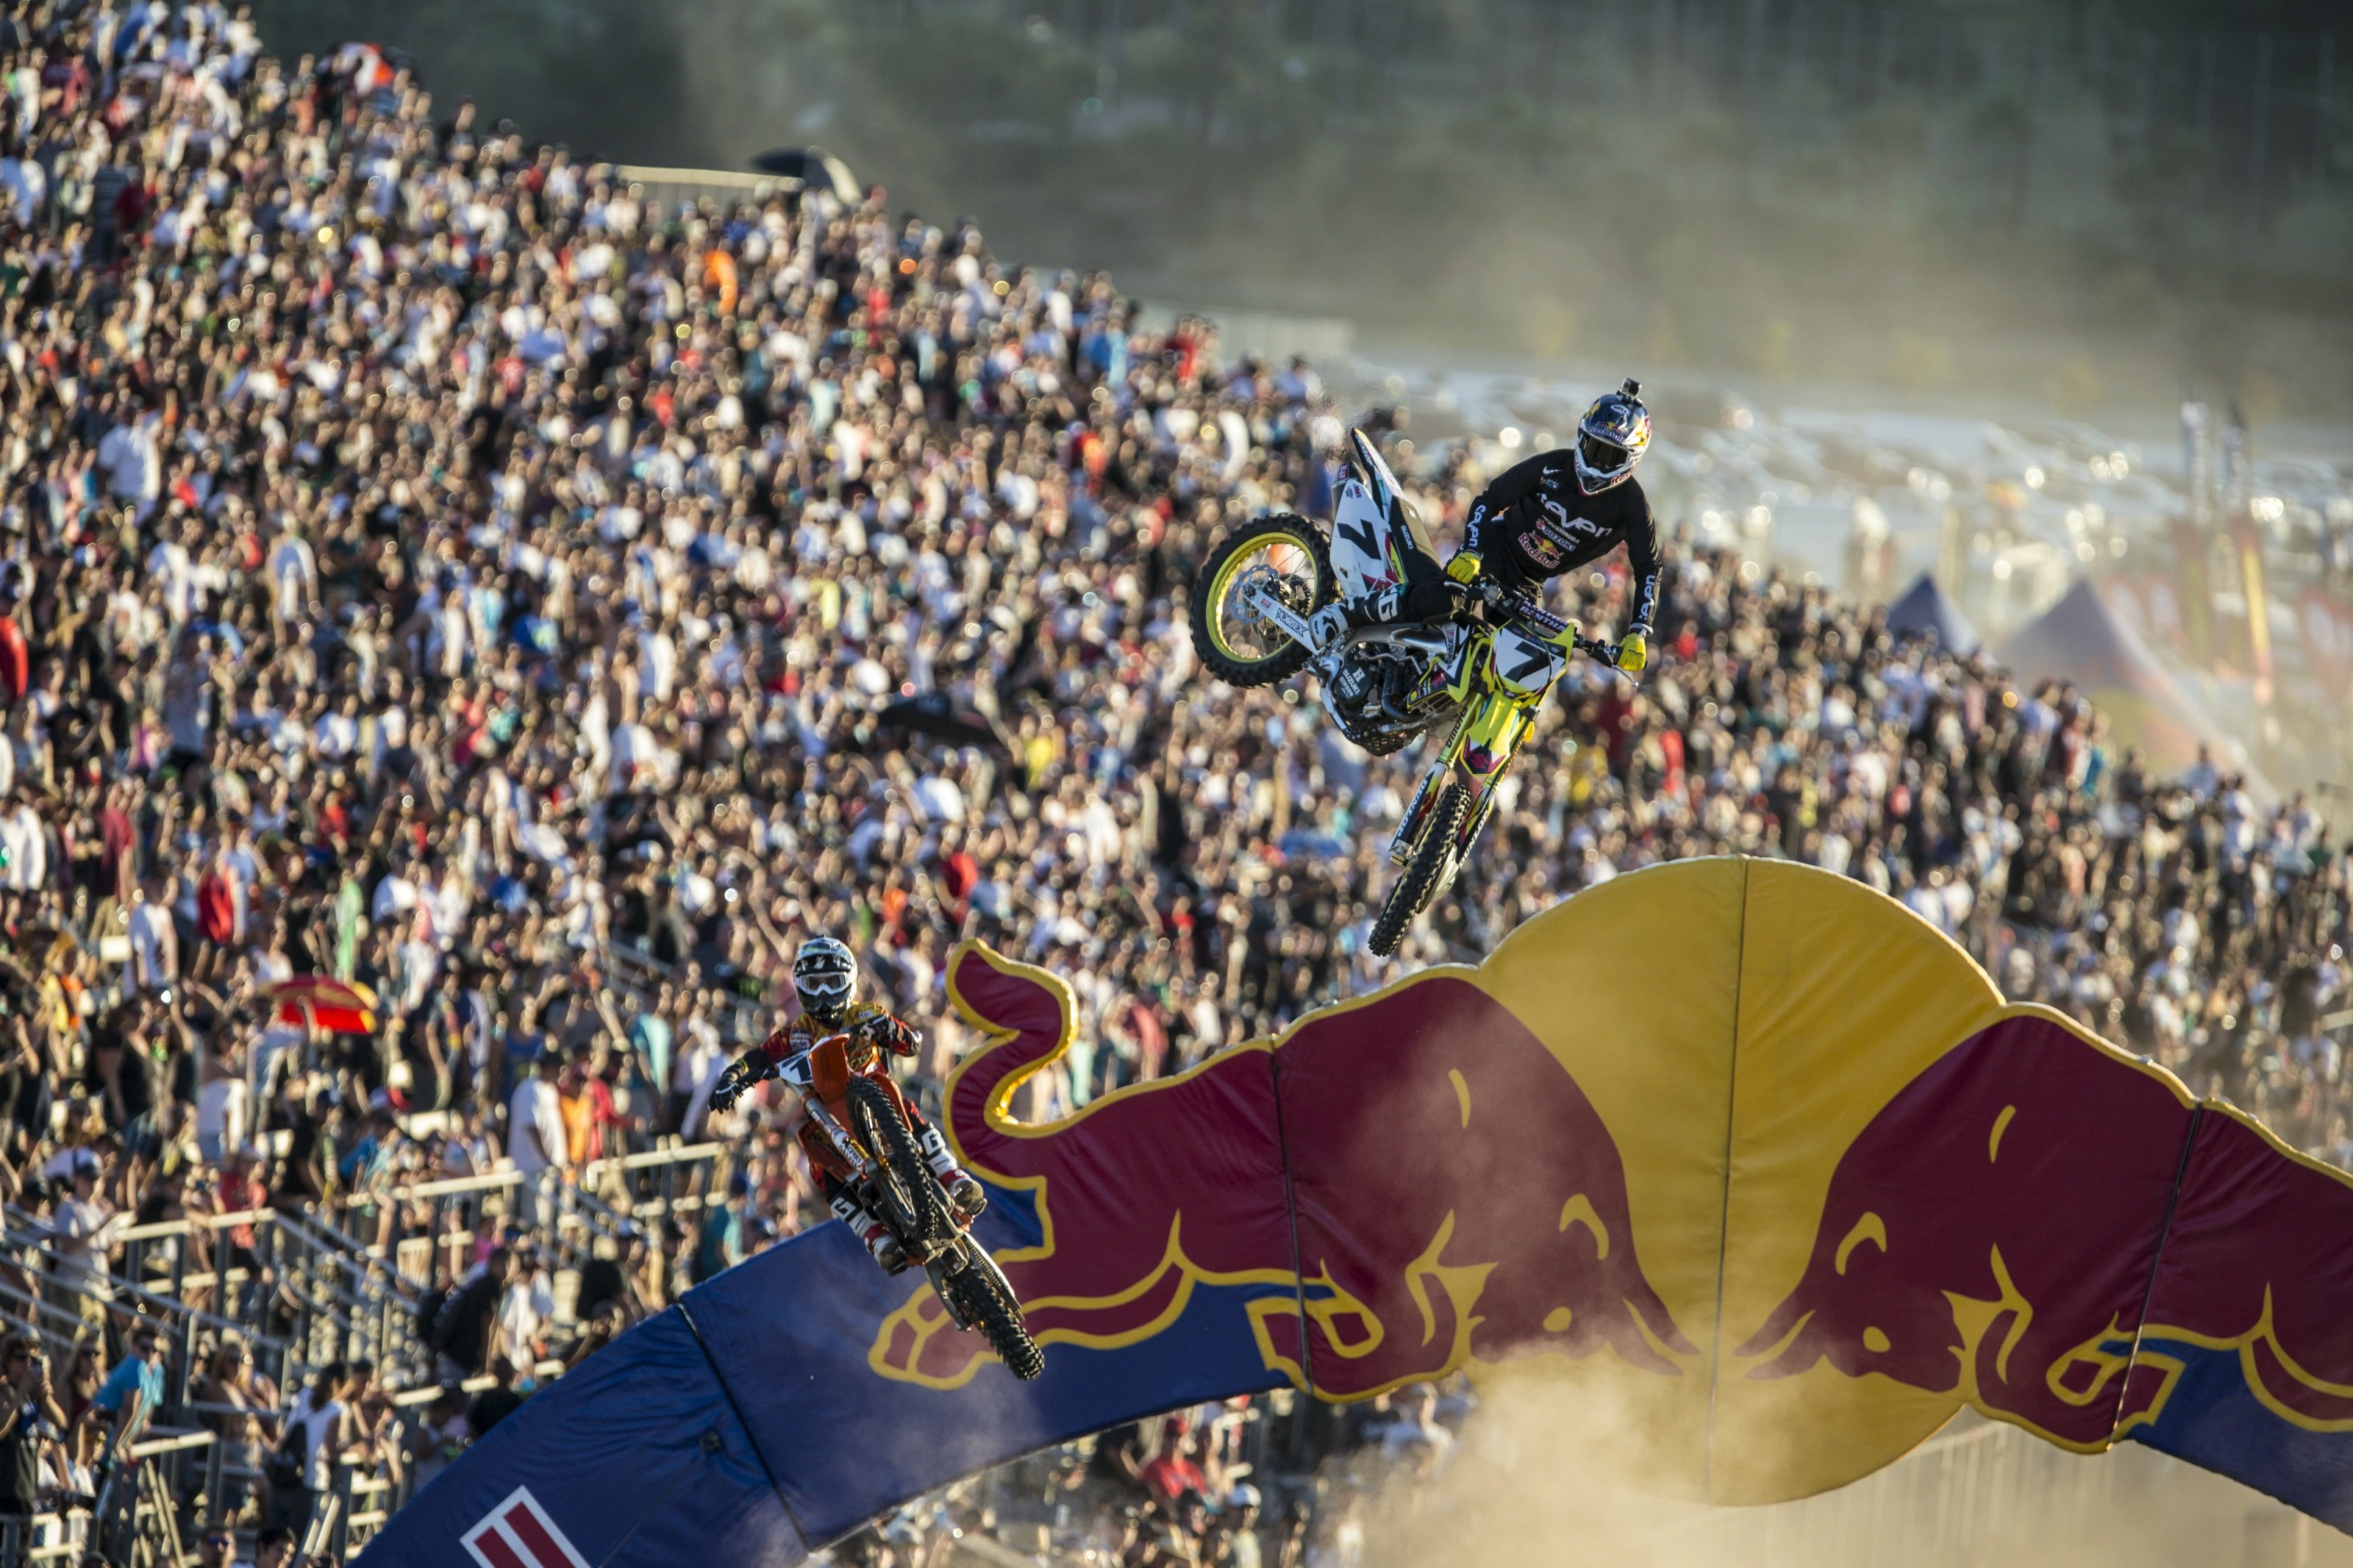 James Stewart and Justin Brayton - Action